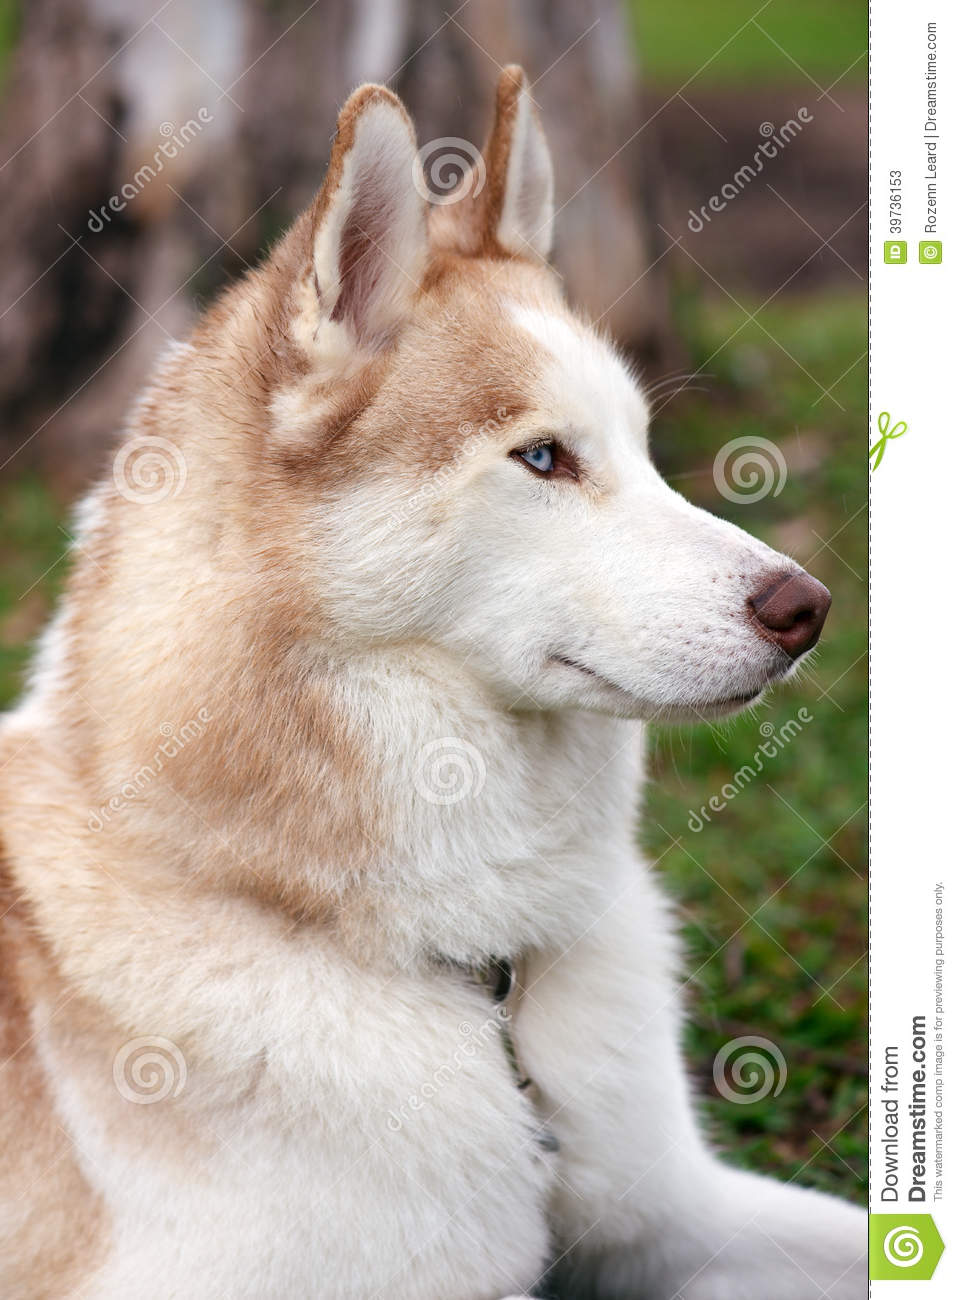 Husky Dog Portrait Stock Image Image Of Elegant Animal 39736153